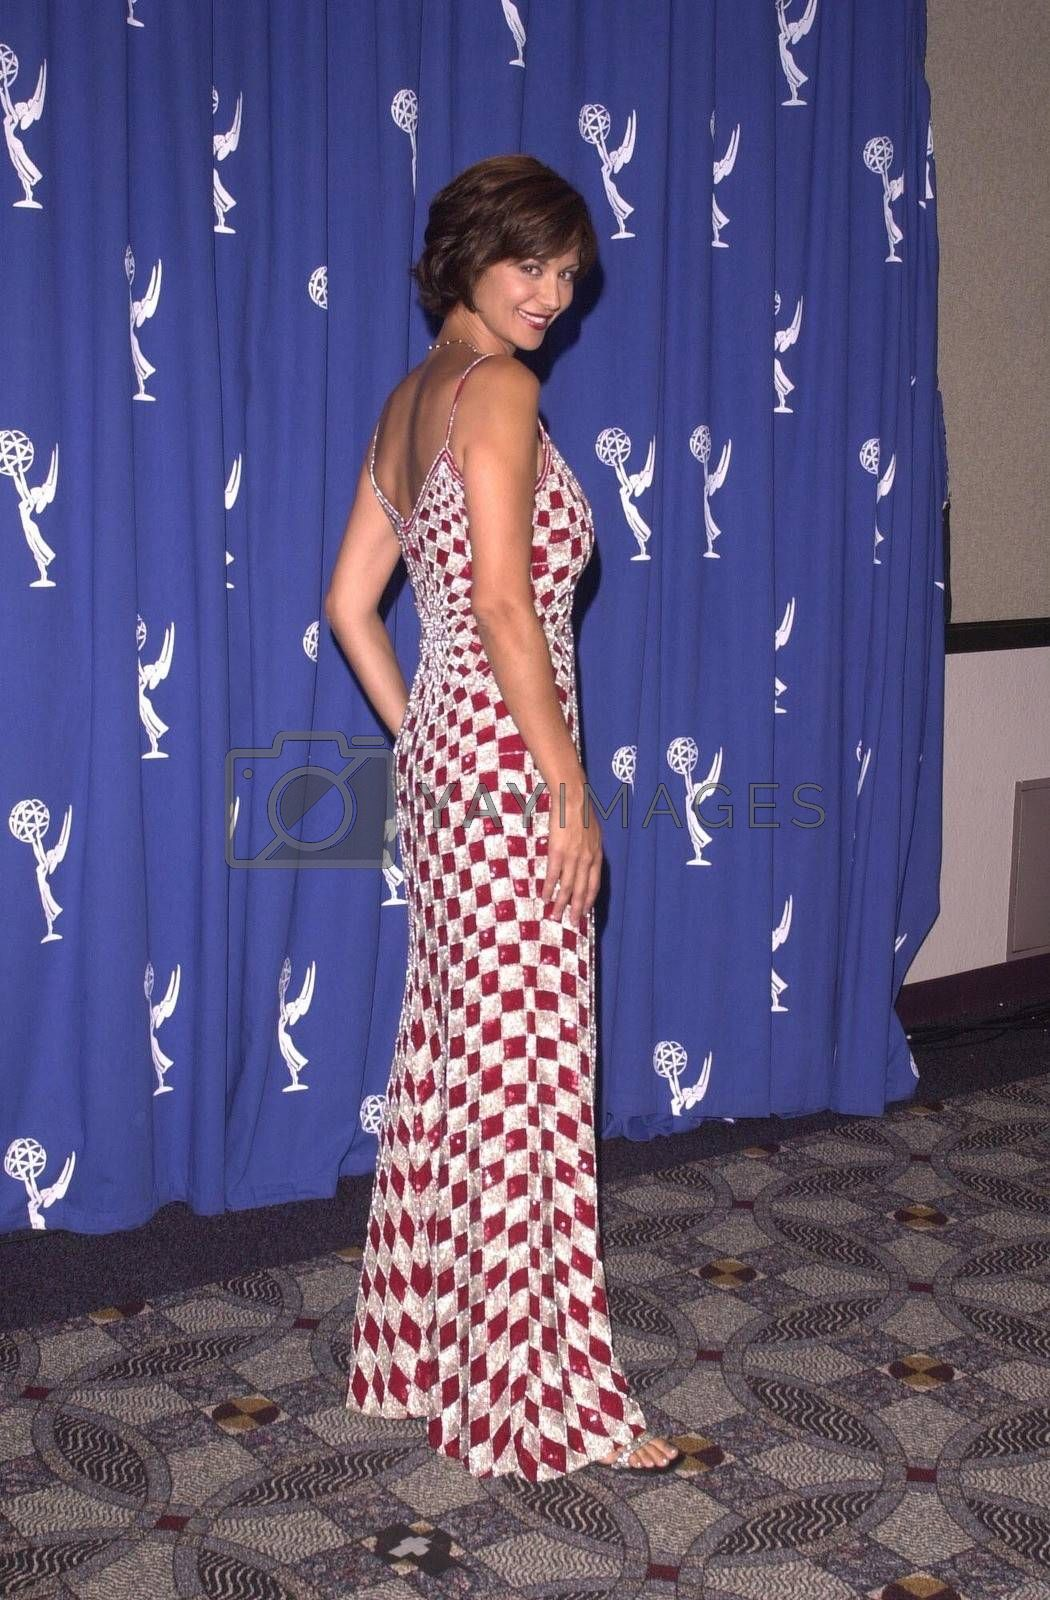 Catherine Bell at the Creative Arts Emmy Awards in Pasadena. 08-26-00